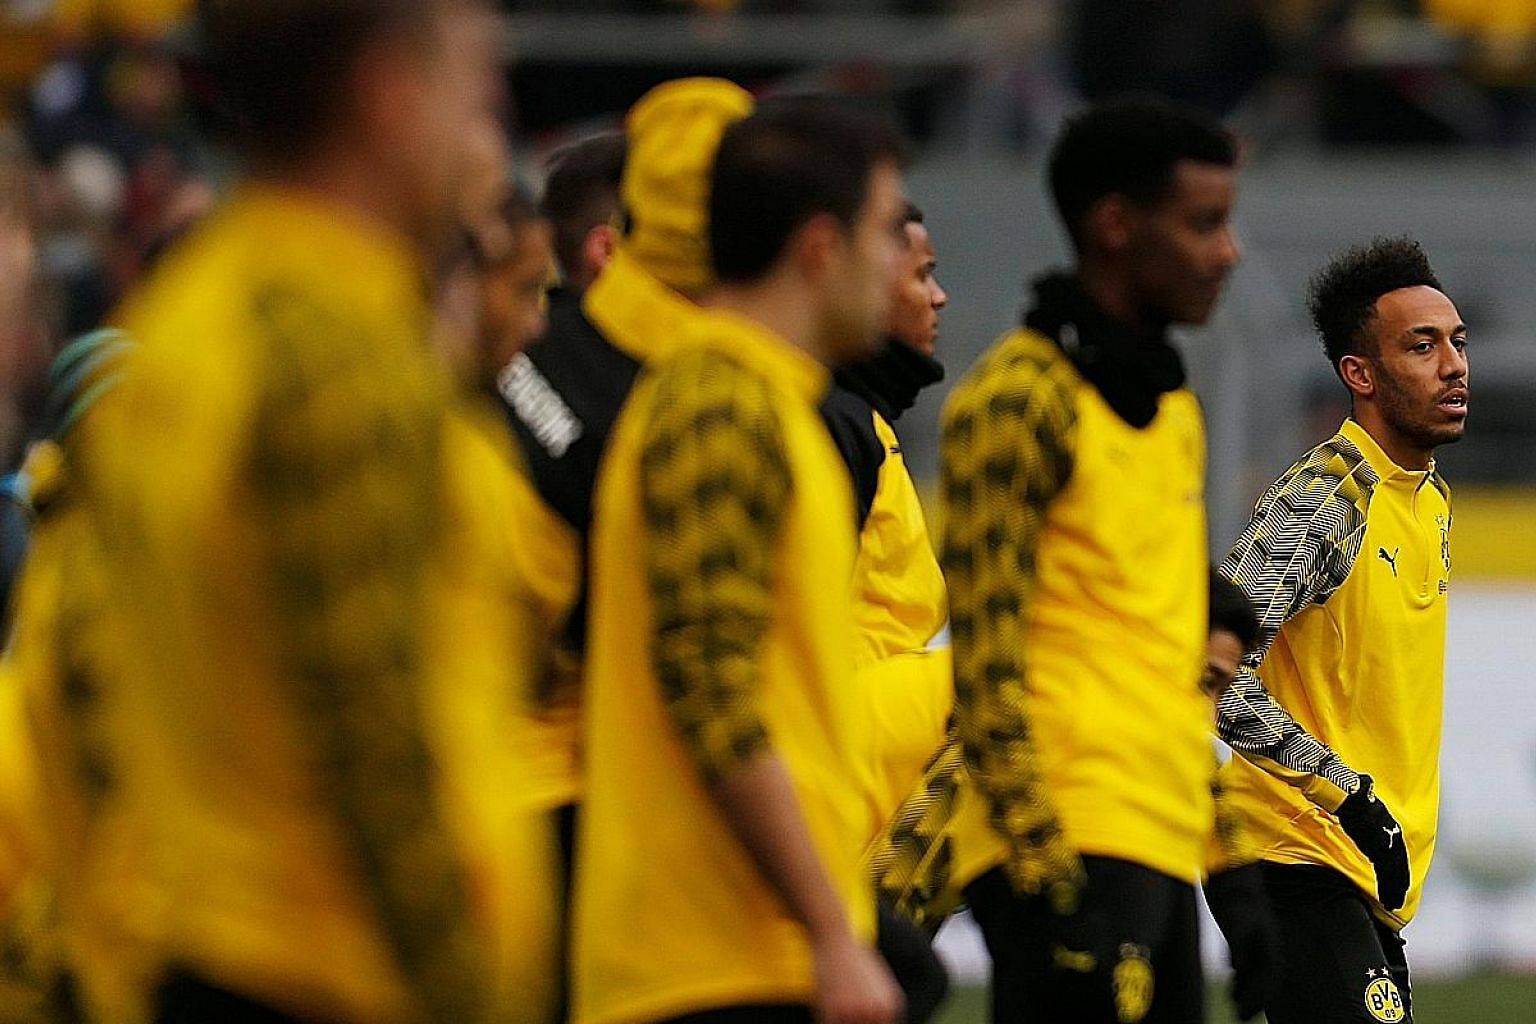 The transfer of Pierre-Emerick Aubameyang (far right) to Arsenal will not be ratified by Borussia Dortmund until they find a replacement for the Gabon striker.